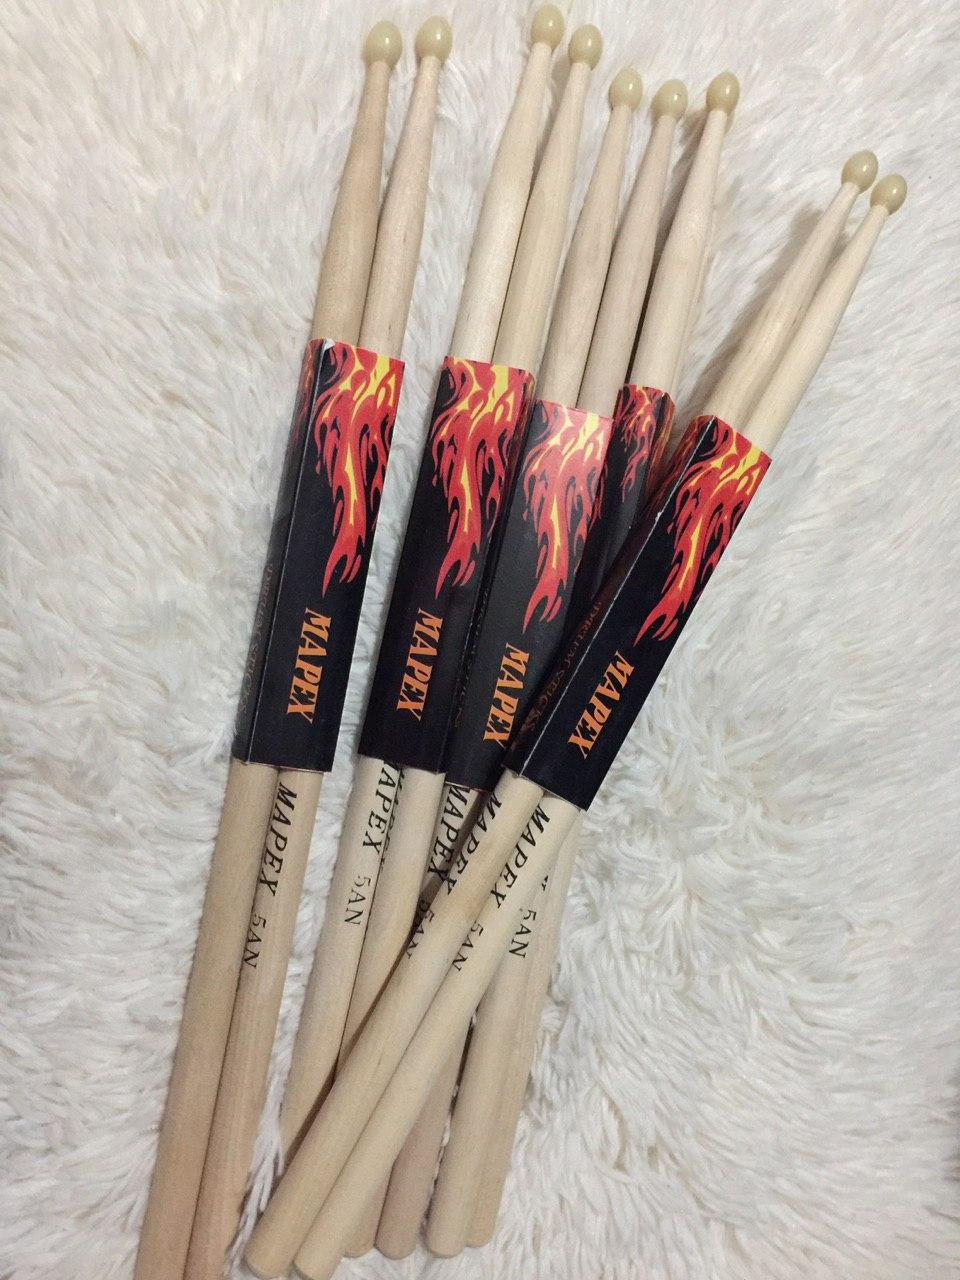 Drum Stick With Nylon Tip Mapex 7A